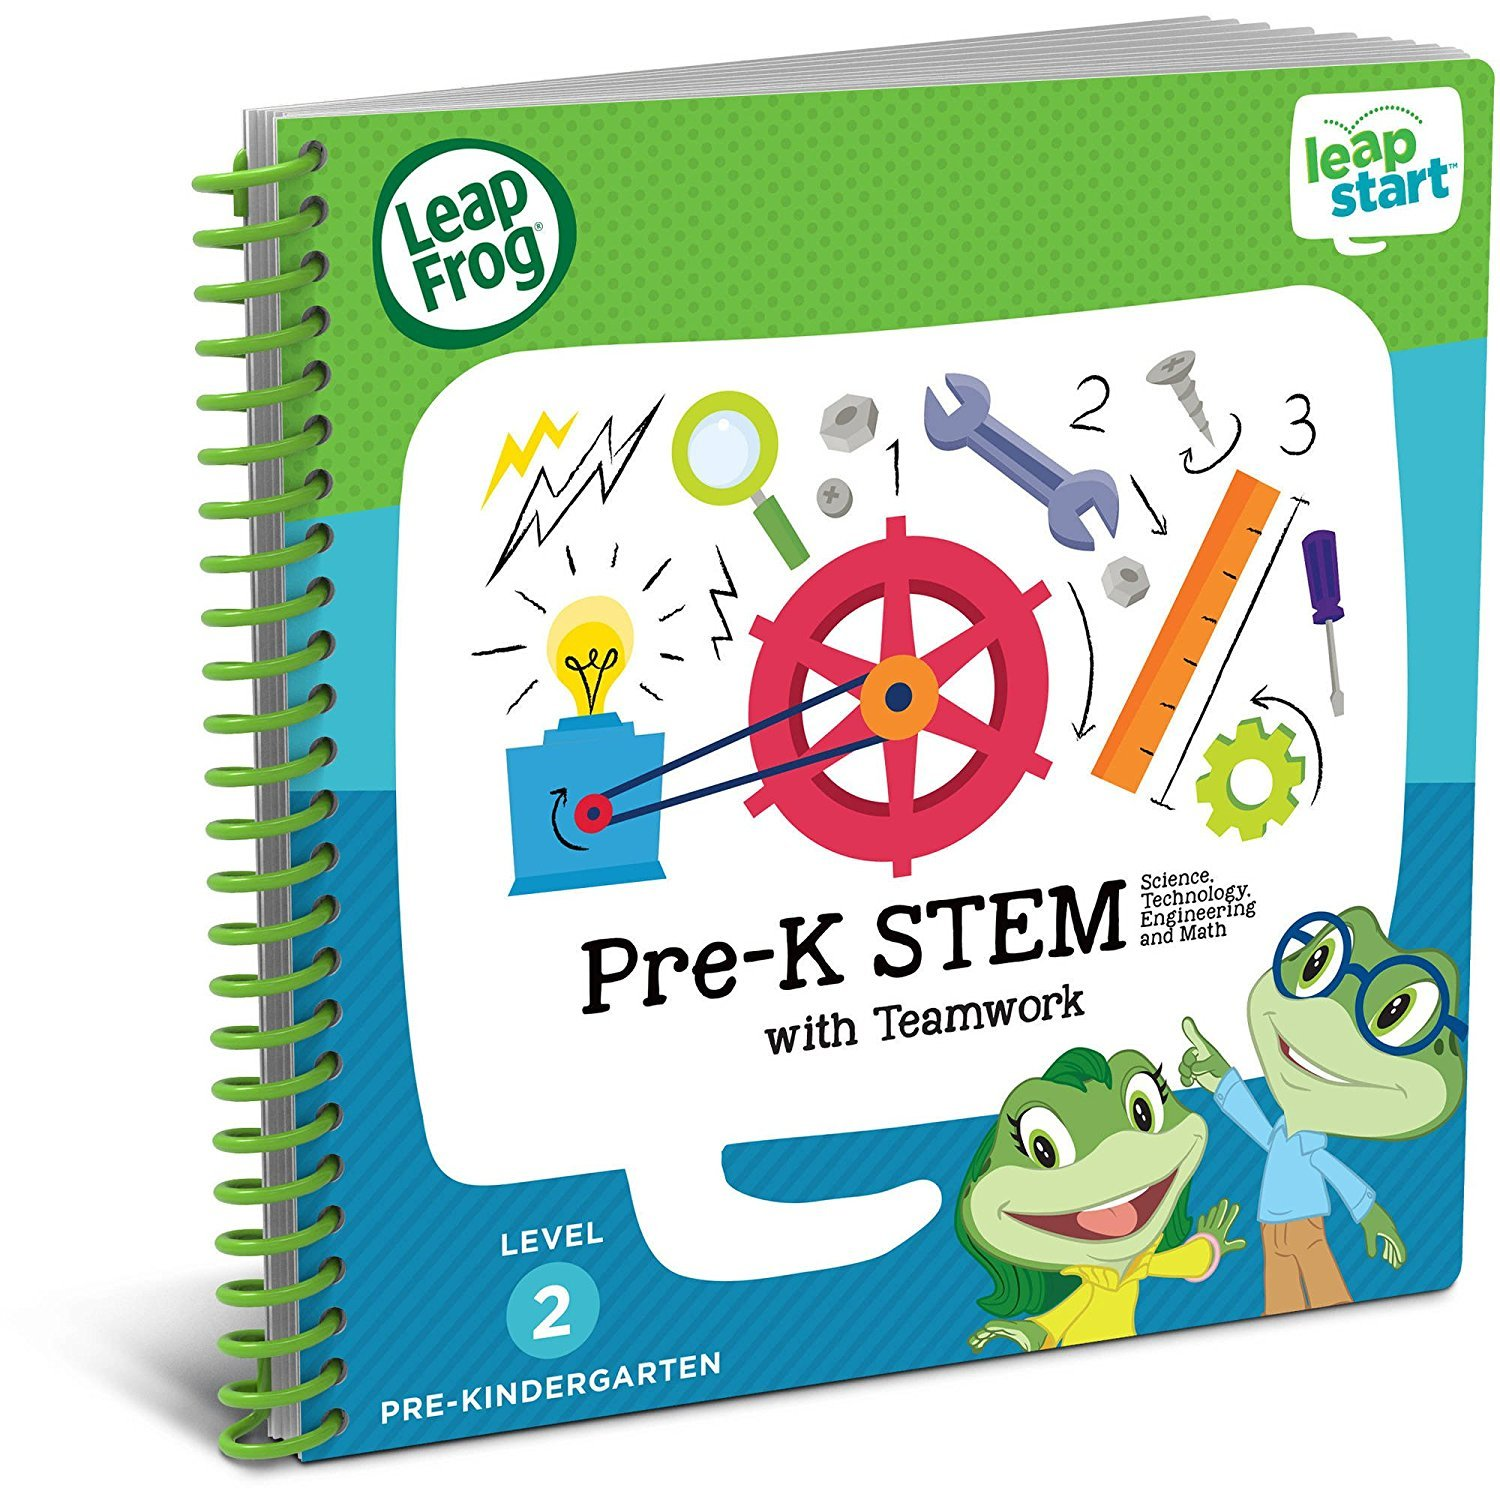 LeapFrog LeapStart Preschool, Pre-Kindergarten Interactive Learning System For Kids Level 2 Ages 2-4 With Junior Activity Books: STEM, Math, Read & Write & First Day School Fun Activity Bundle by LeapFrog (Image #3)